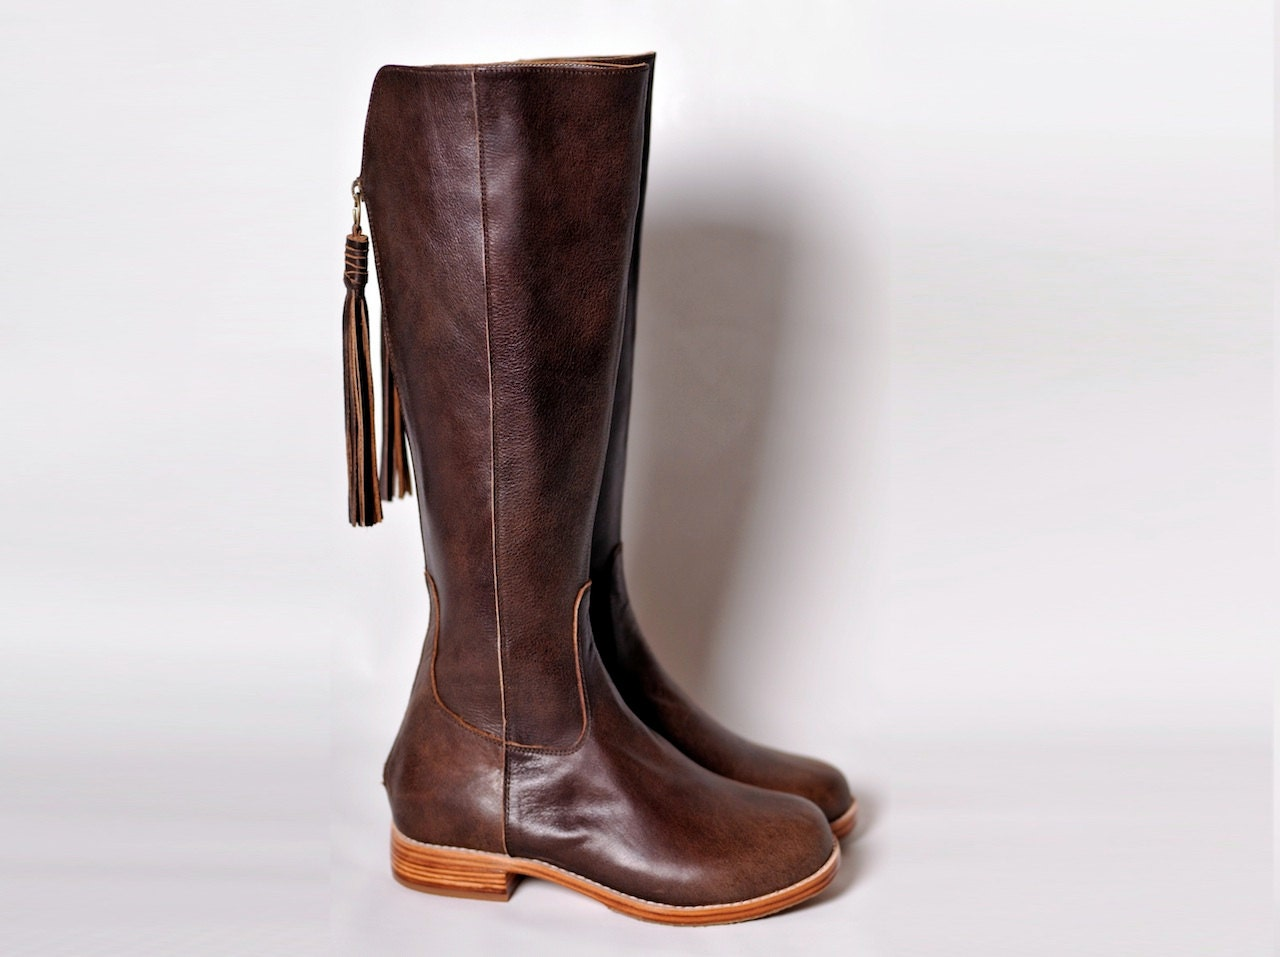 Innovative Light Brown Leather Riding Boots  Shoes Mod